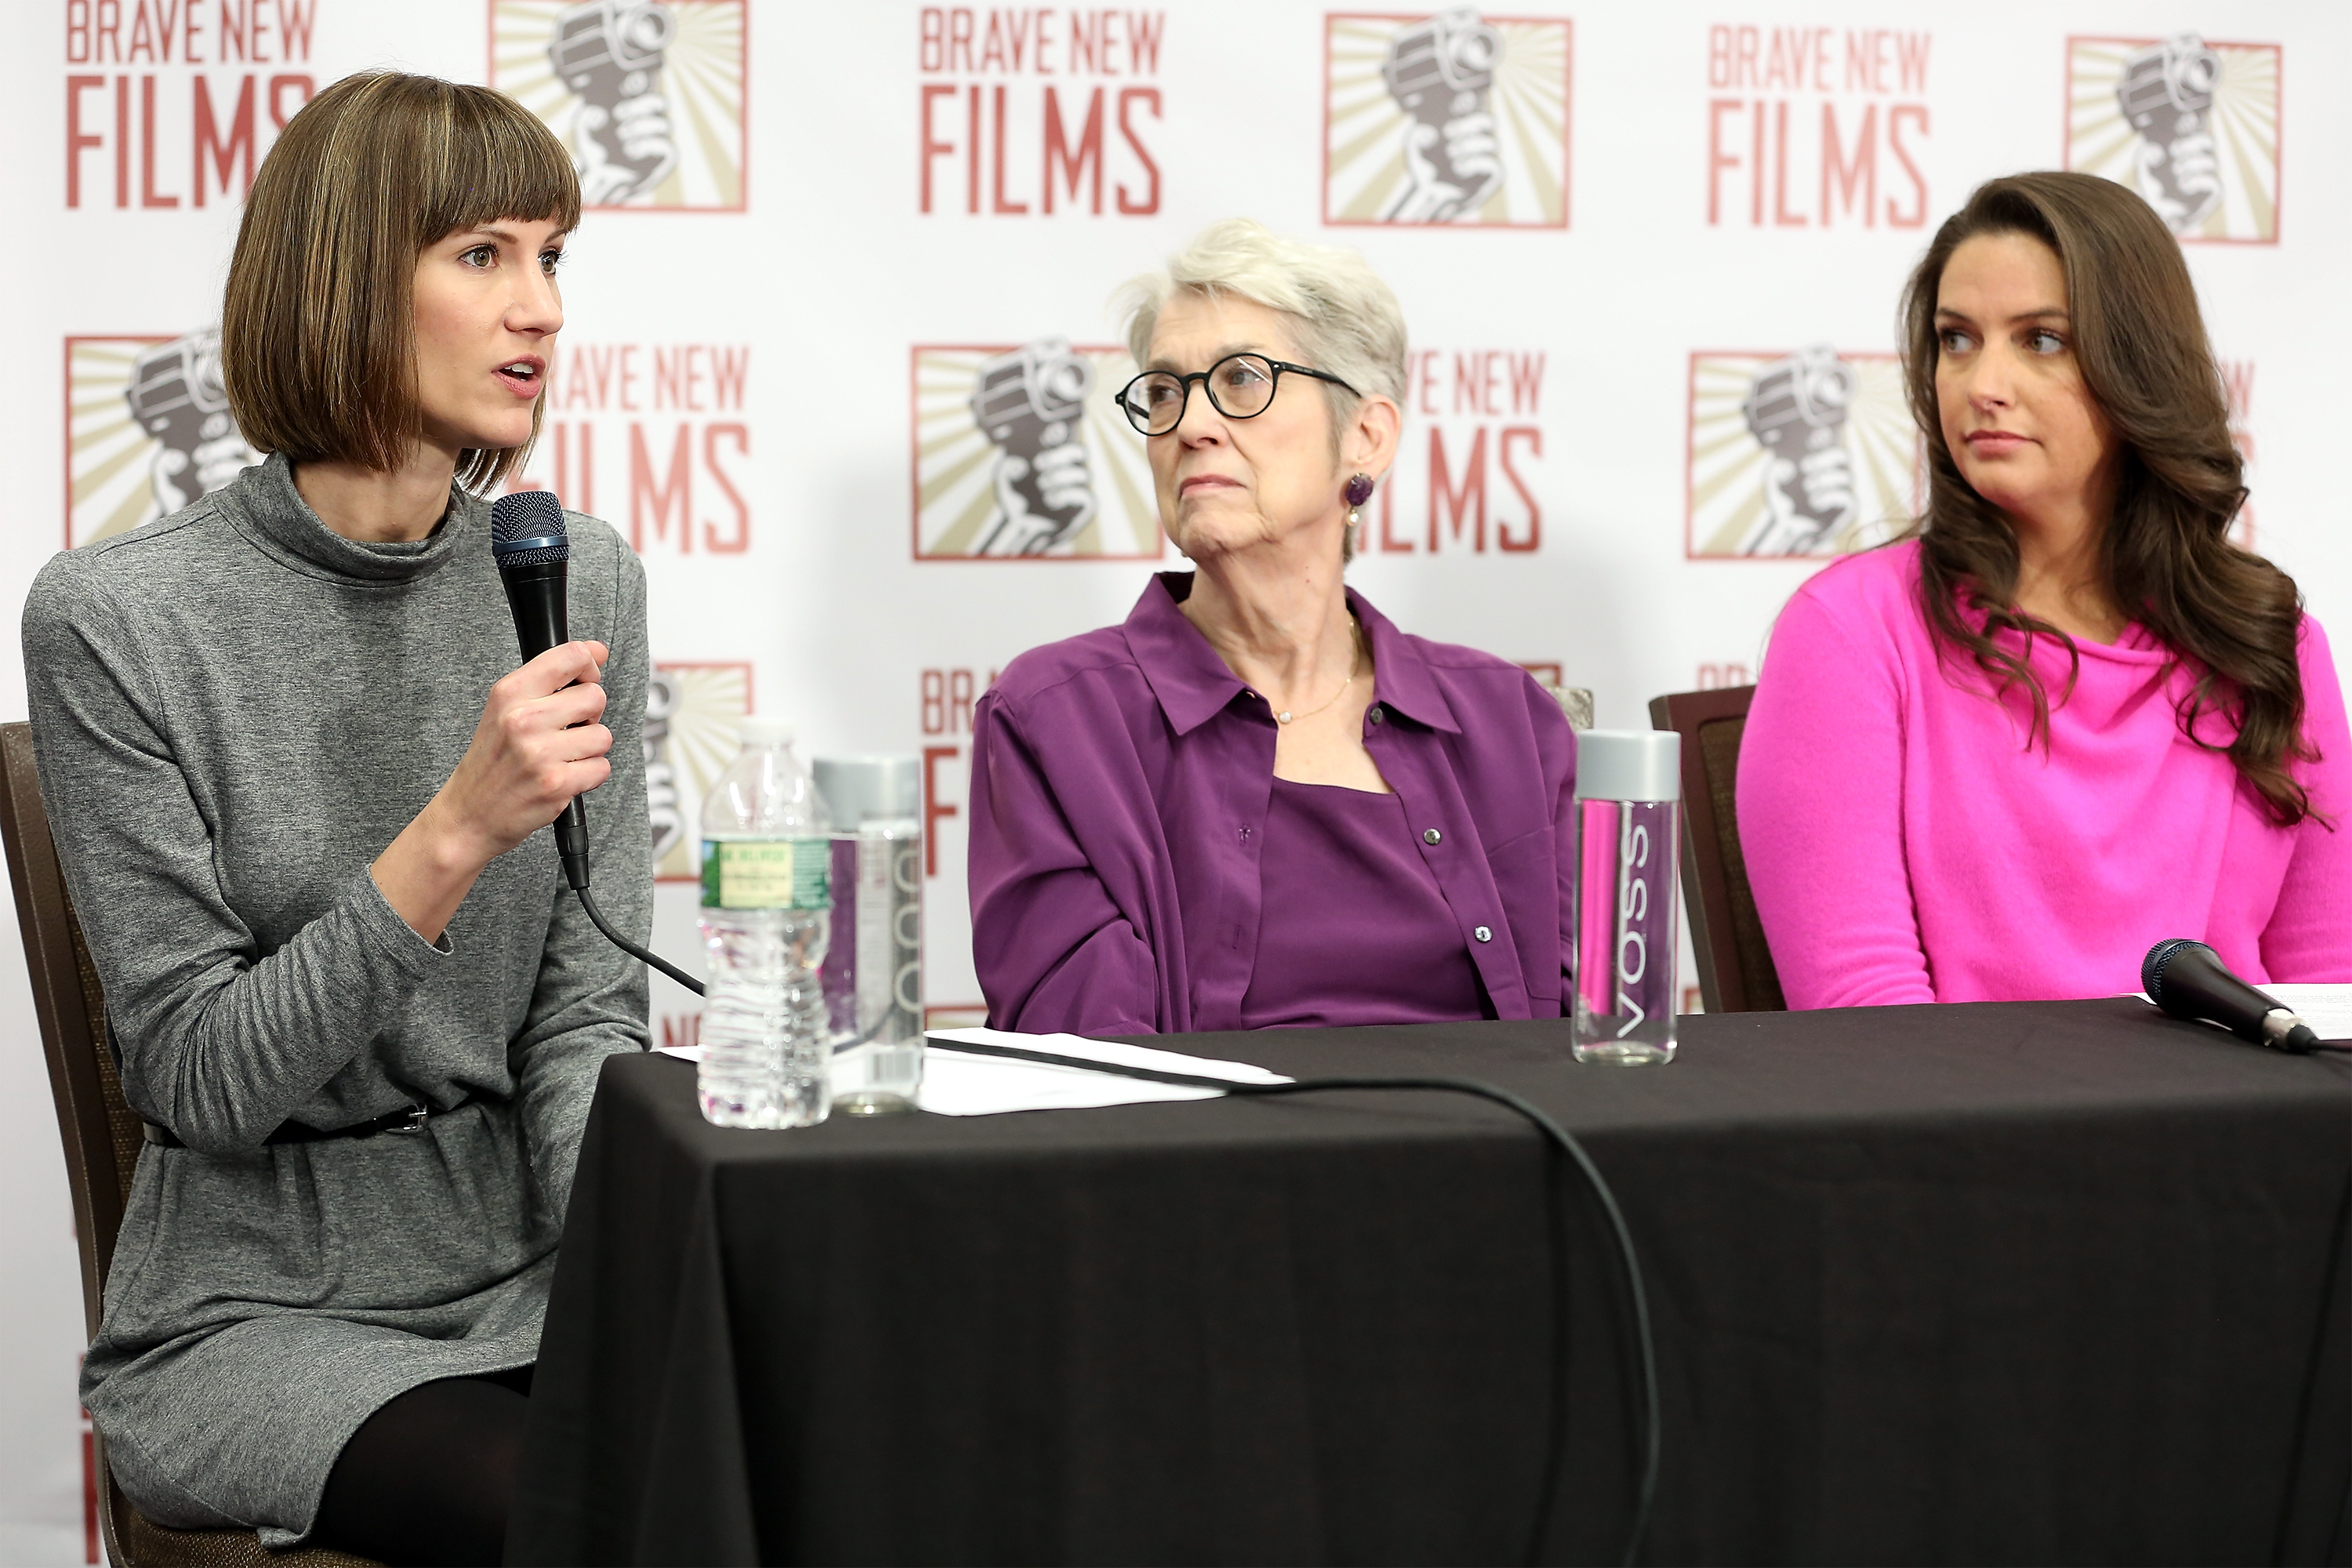 Rachel Crooks, Jessica Leeds, and Samantha Holvey speak during the press conference held by women accusing President Donald Trump of sexual harassment on December 11, 2017 in New York City.